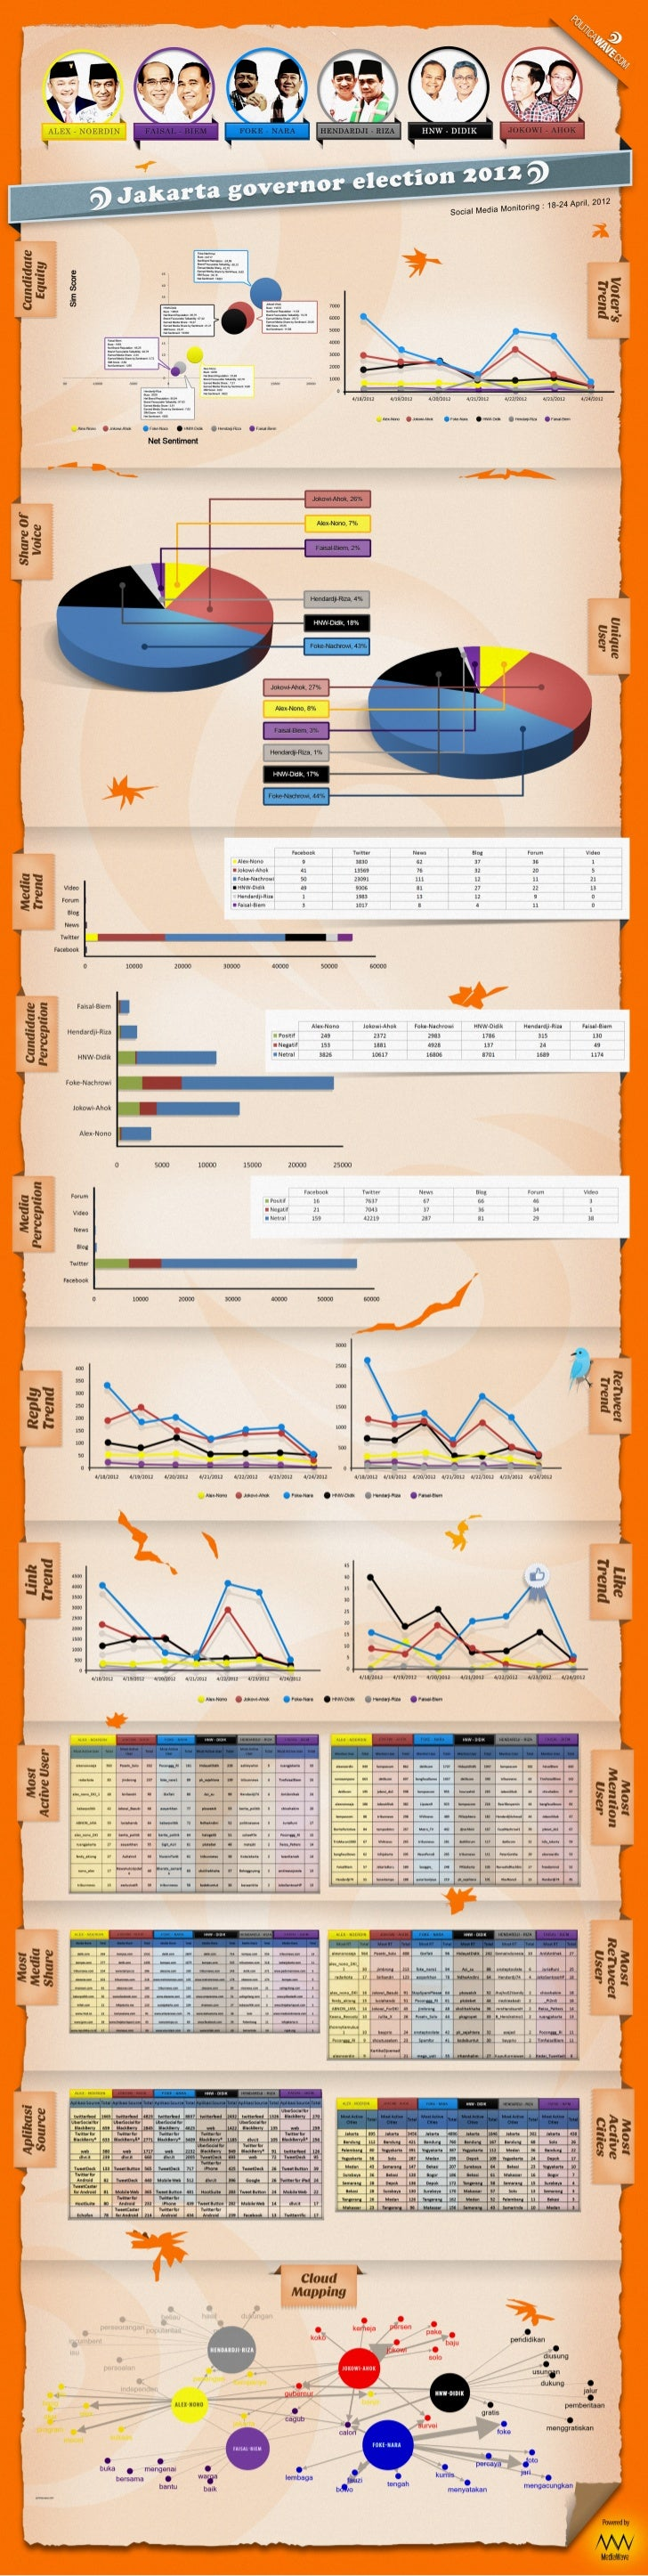 Indonesia Politic Data Trend Analysis in Social Media [Infographic]